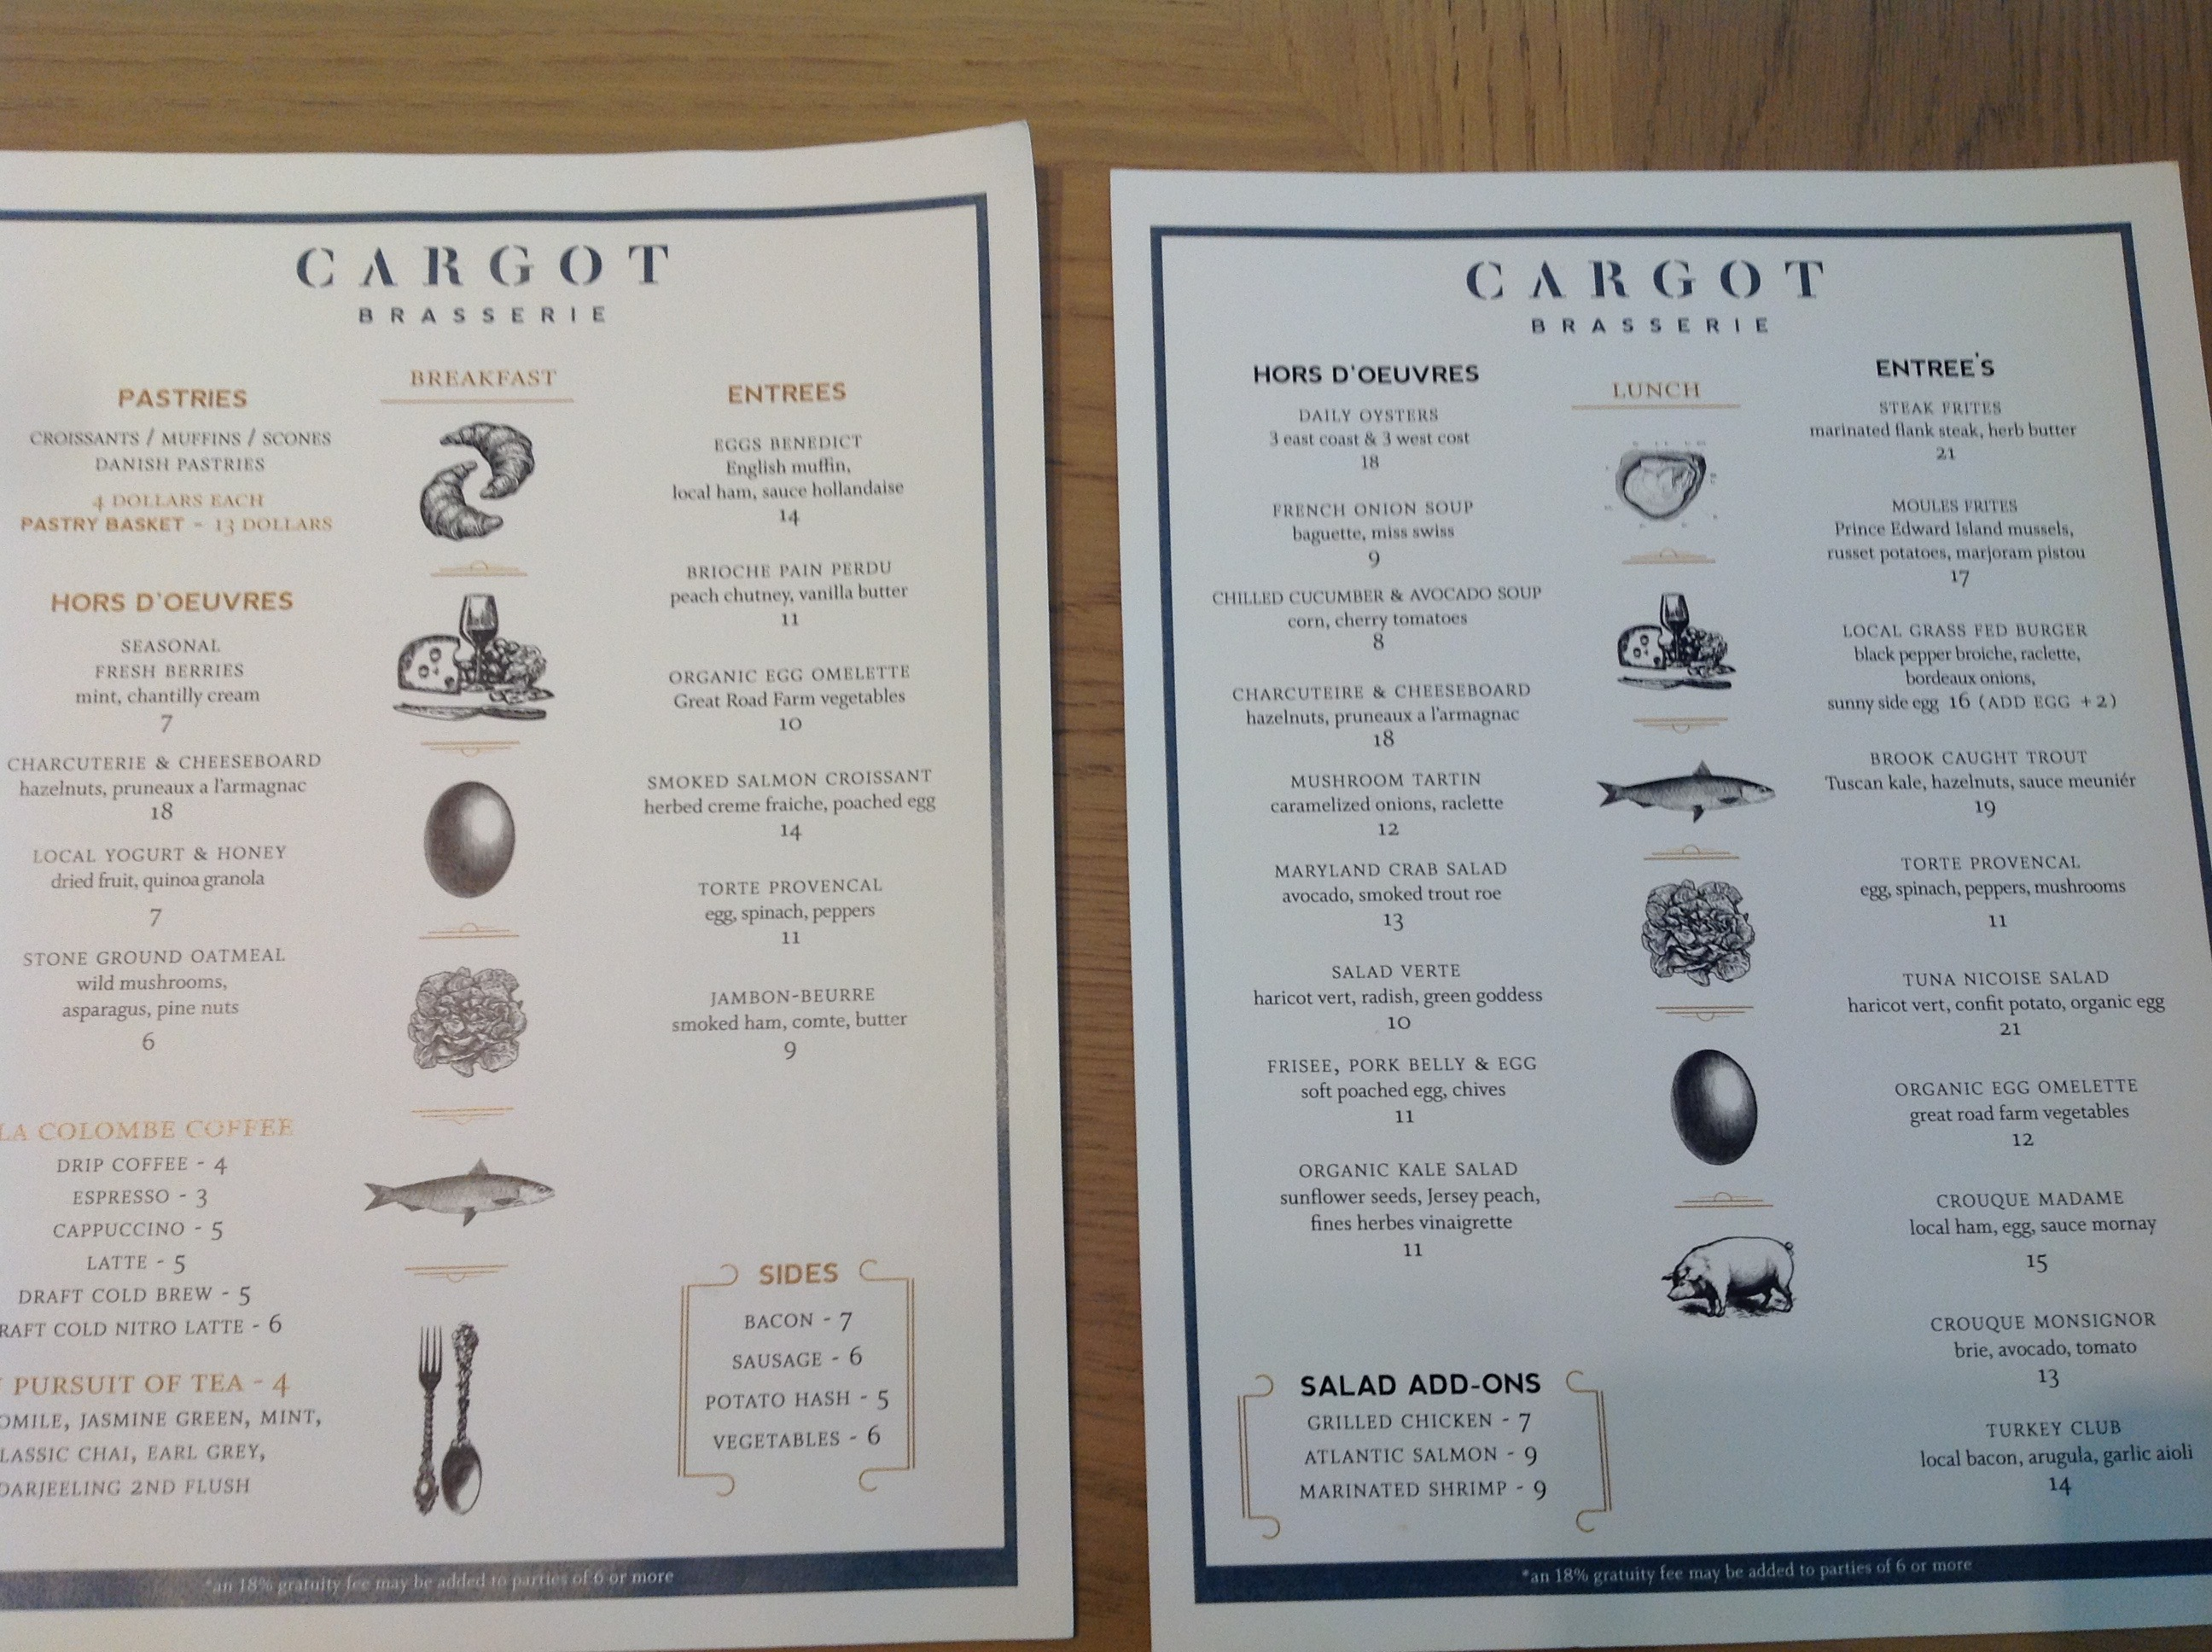 Cargot Brasserie' Opens At Former Princeton Rail Station (Photos